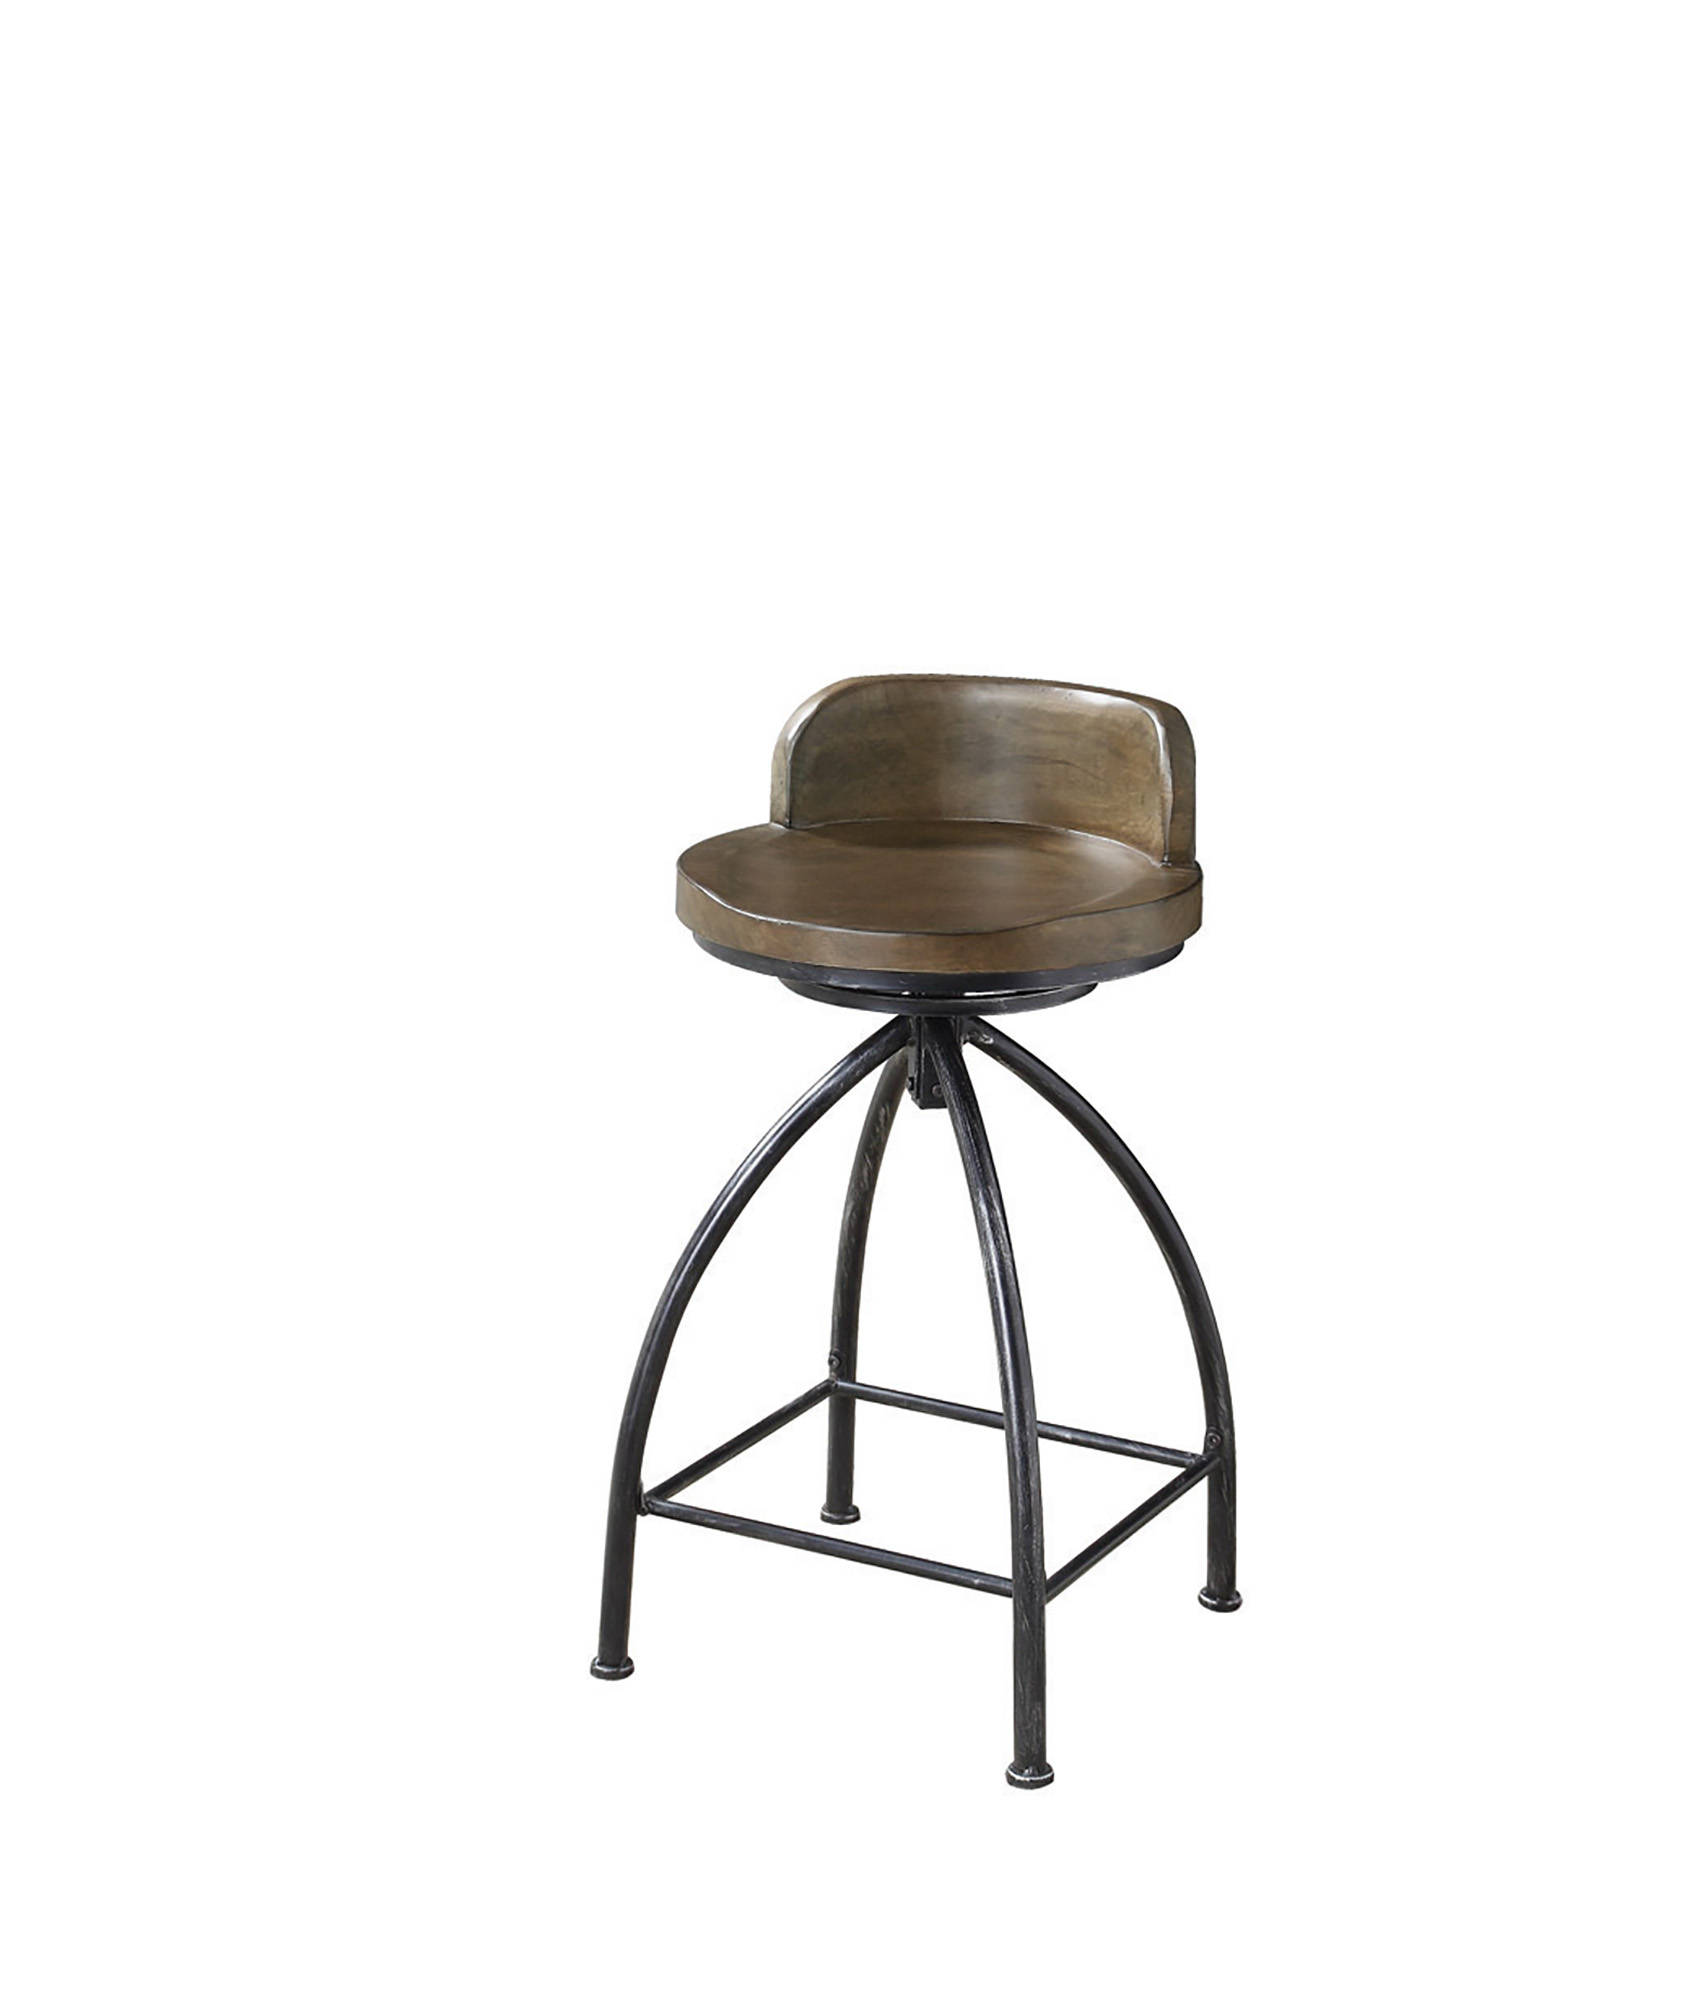 Peachy Coaster Furniture Cognac Solidwood Swivel Bar Stool Gmtry Best Dining Table And Chair Ideas Images Gmtryco